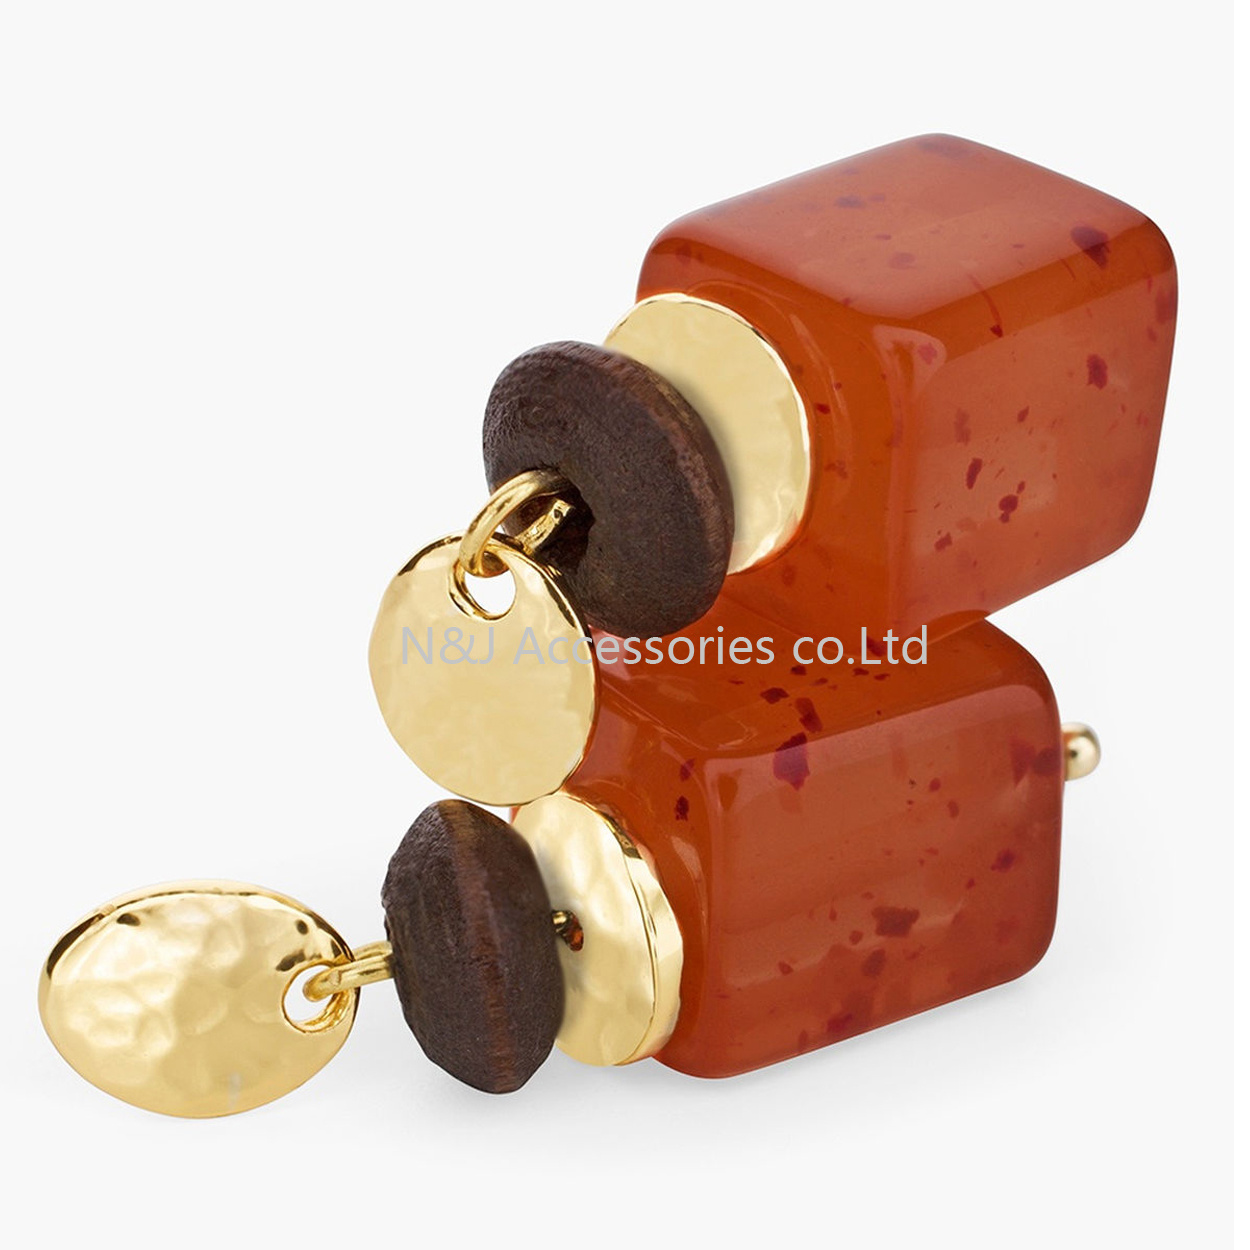 Women Acrylic Beads Square Shape Drop Earrings Vintage Gold Plated Zinc Alloy Pendant Earrings Jewelry for Women Gift